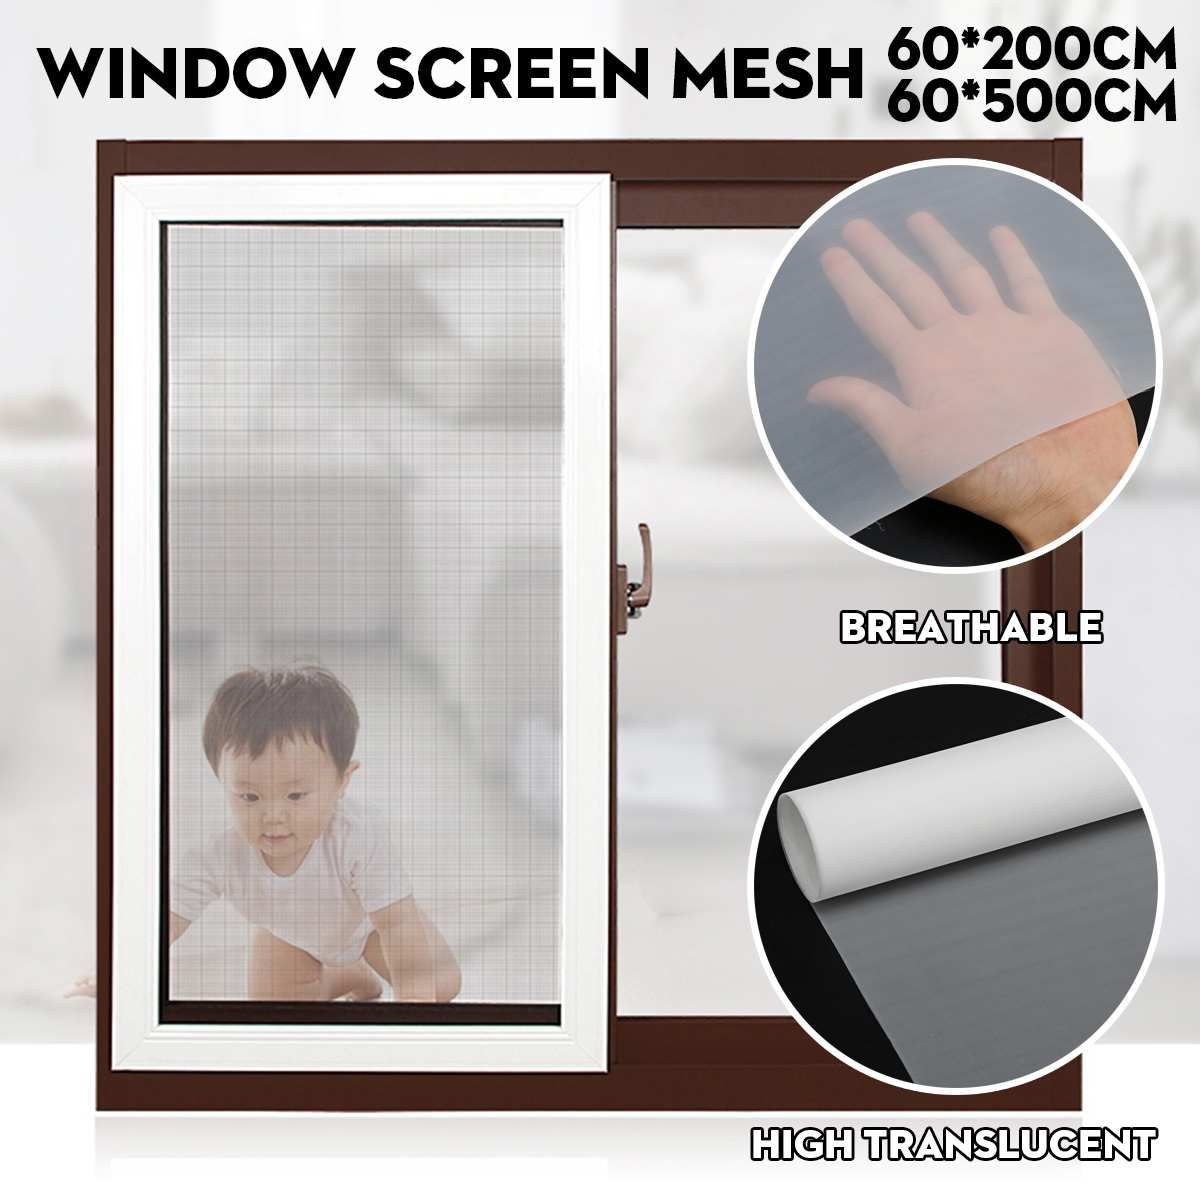 2/5m Super Dense Home Window Screen Mesh PM2.5 Dustproof Insect Fly Curtain Anti Mosquito Door Screens Net Curtain For Kids Room